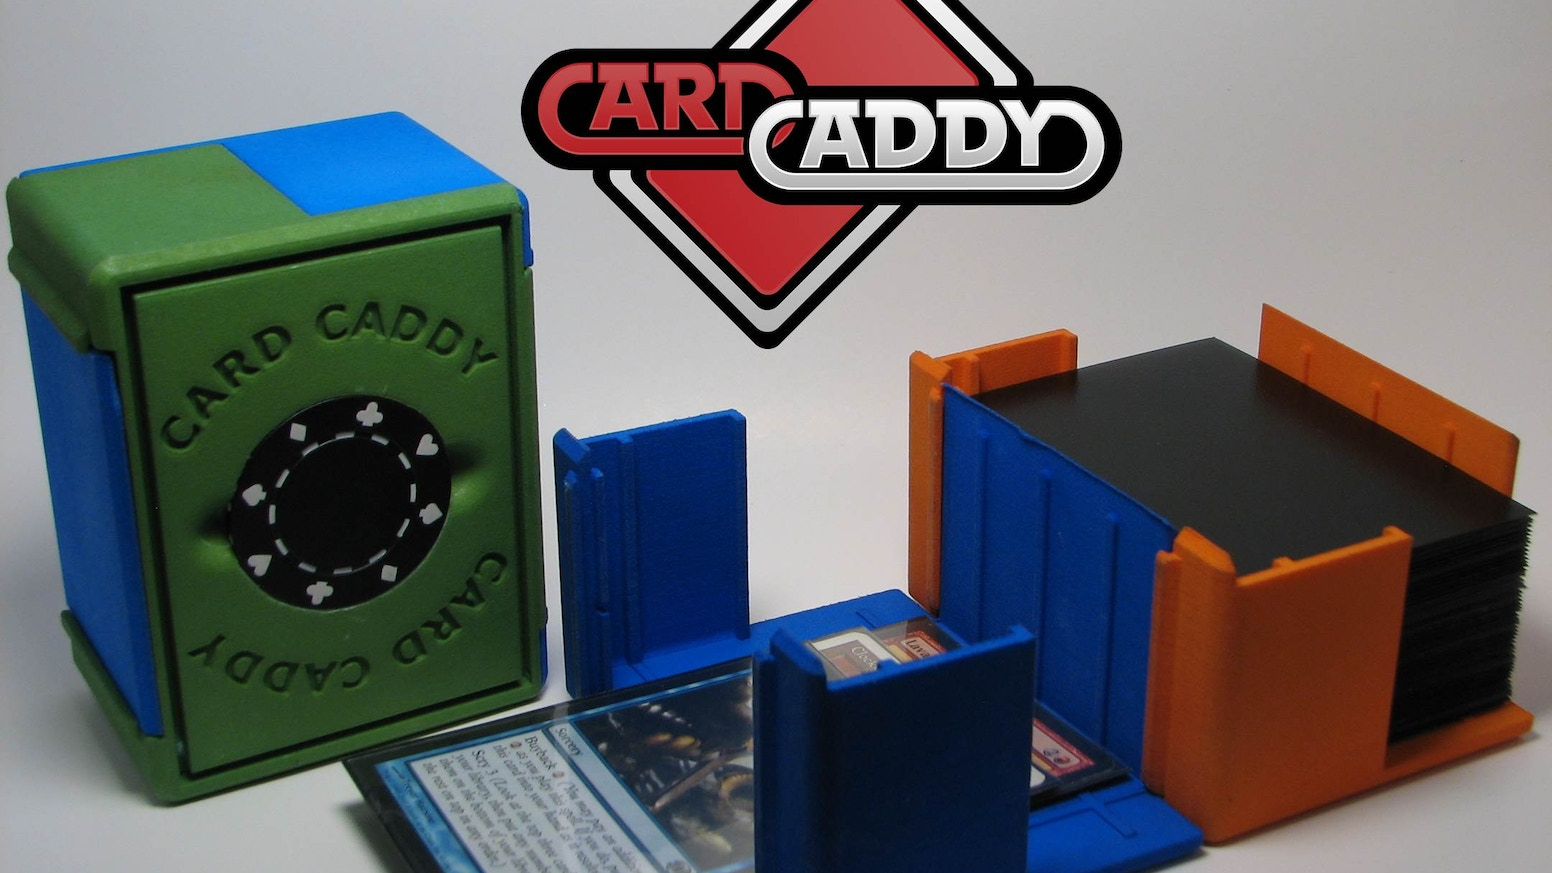 The Card Caddy is the only playing card case that converts to a discard tray - now in a Double Decker version for bigger decks!